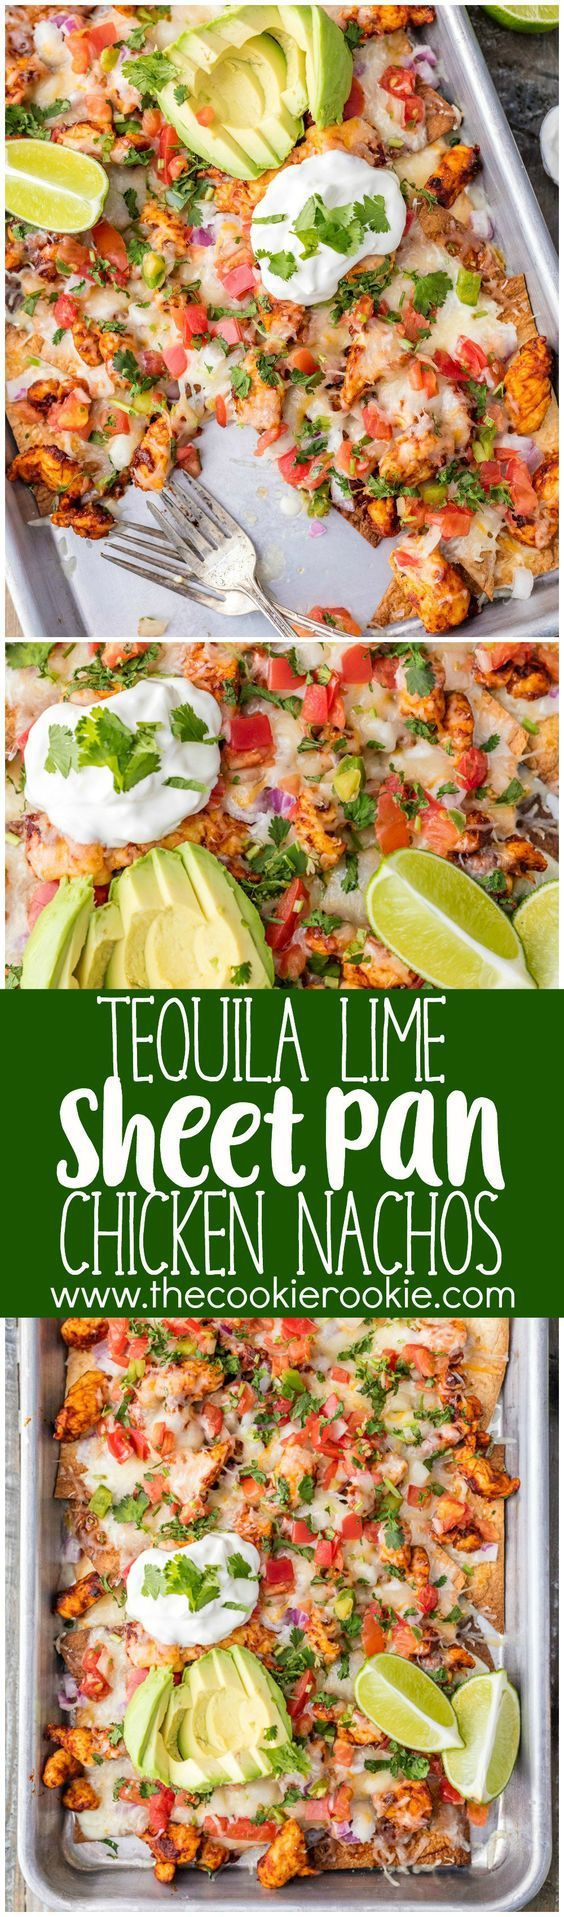 The best sheet pan suppers recipes easy and quick baked family tequila lime sheet pan chicken nachos recipe via the cookie rookie a great recipe for feeding a crowd with delicious chicken nachos easy delicious forumfinder Image collections